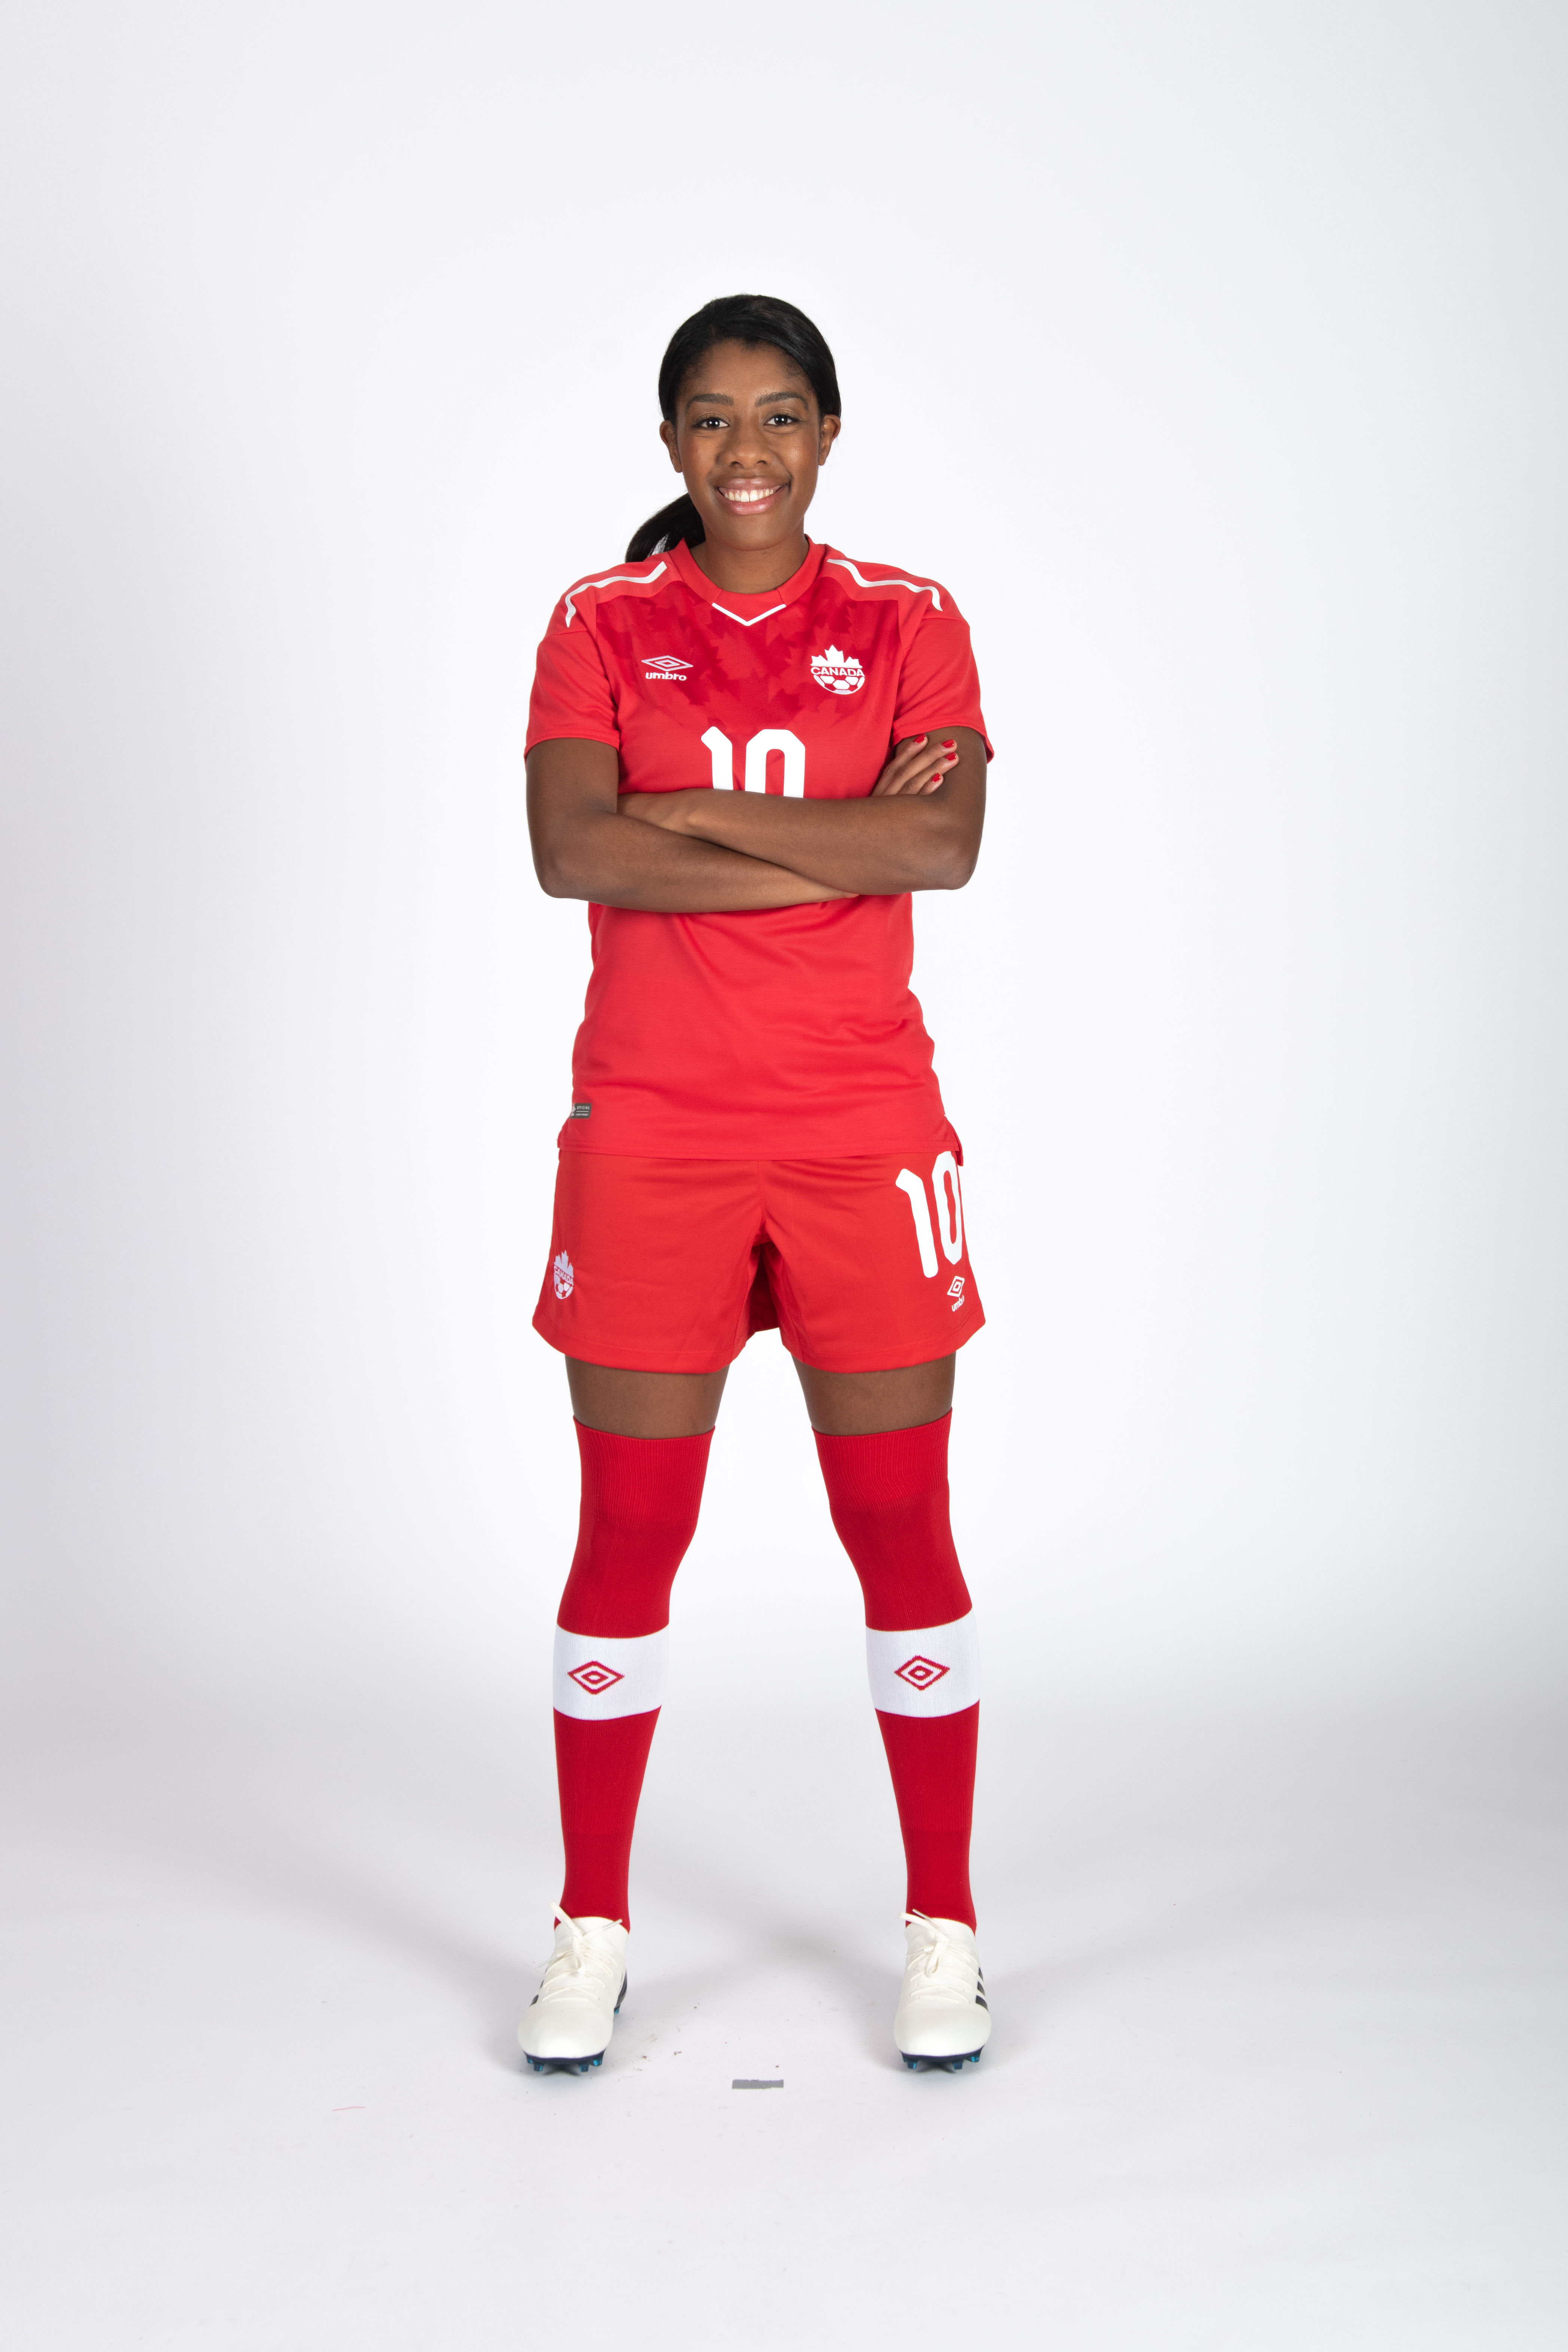 20180604_CANWNT_Lawrence_byBazyl08